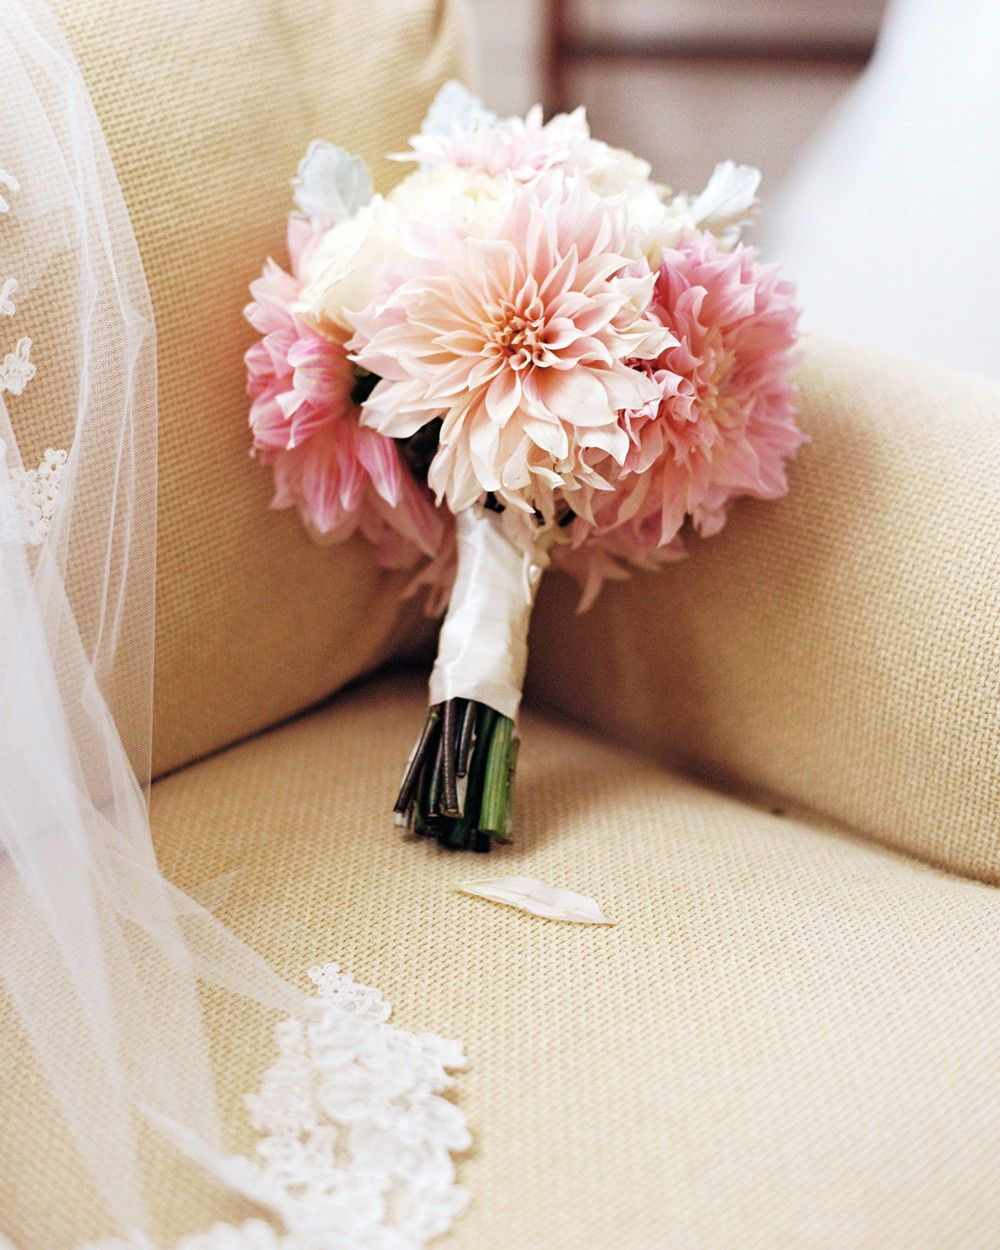 Single Flower Wedding Bouquets For Minimalist Brides Wedding Bouquets Pink Small Wedding Bouquets Flower Bouquet Wedding